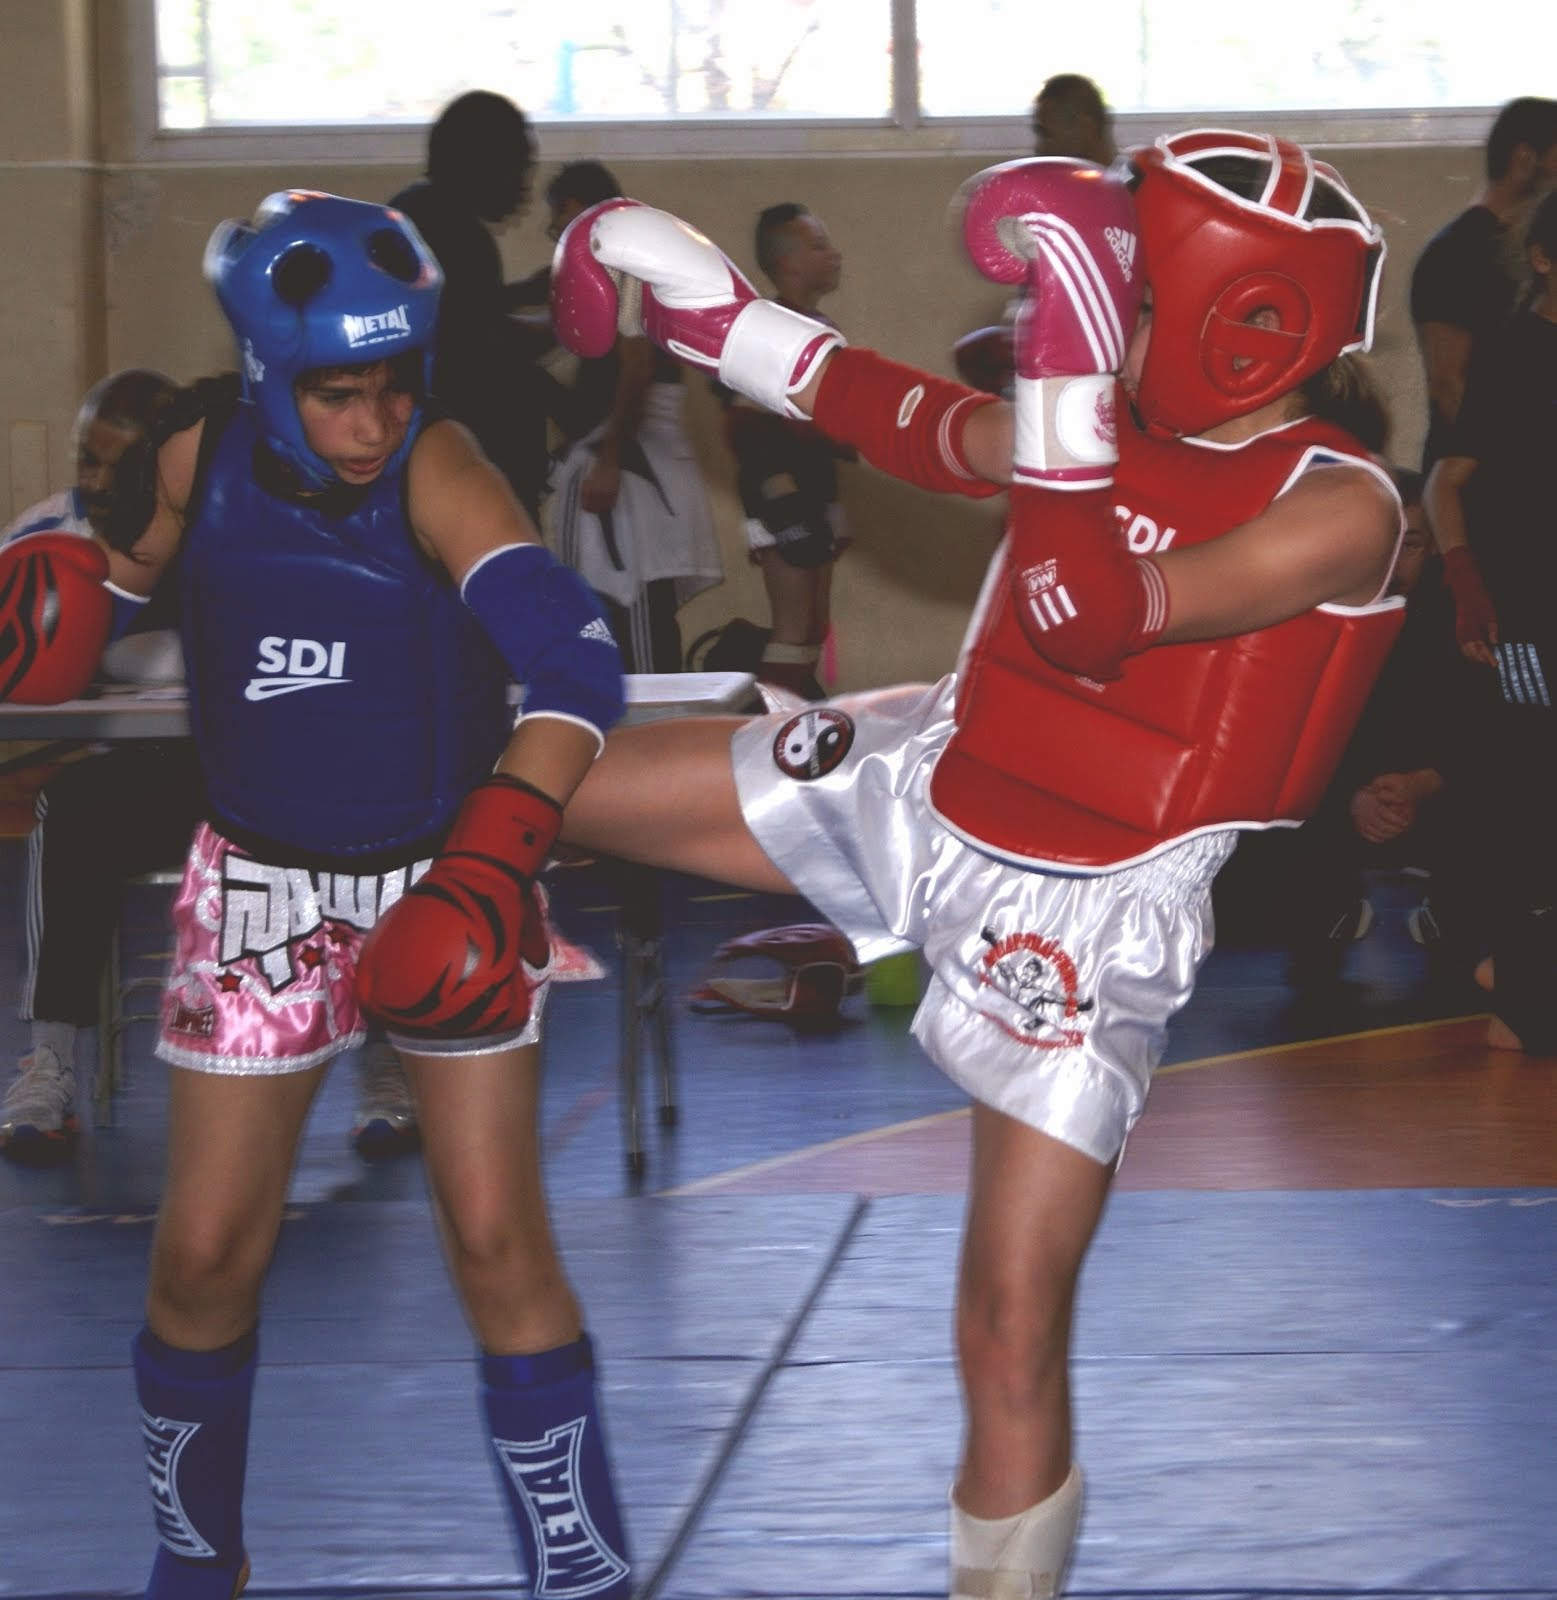 CHAMPIONNAT NATIONAL ASSAUT 2014 BONNEUIL 94